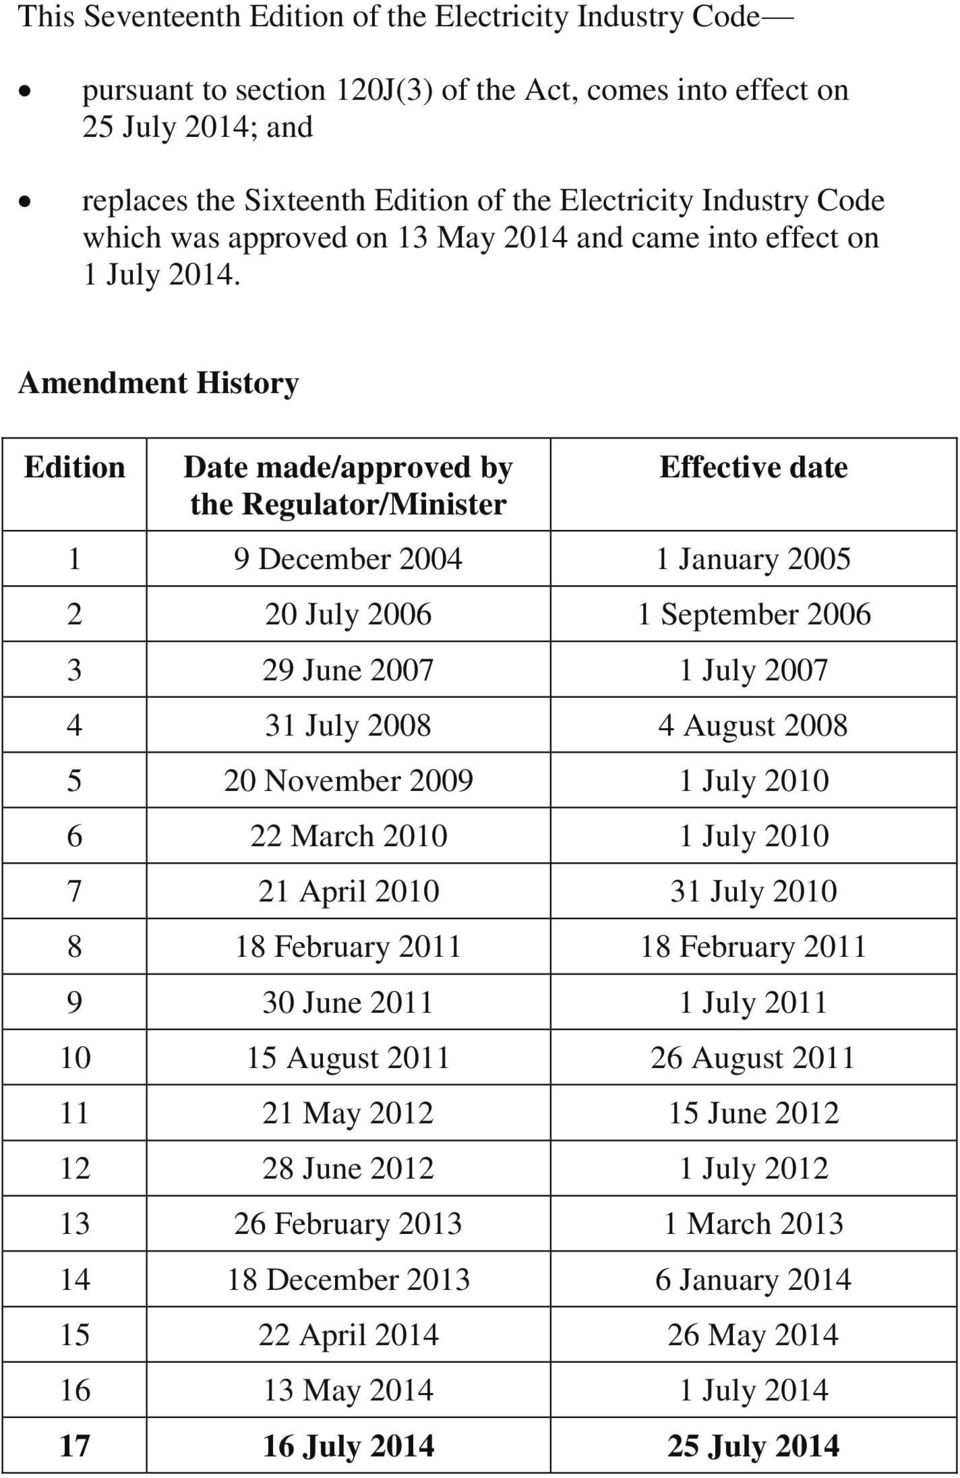 Amendment History Edition Date made/approved by the Regulator/Minister Effective date 1 9 December 2004 1 January 2005 2 20 July 2006 1 September 2006 3 29 June 2007 1 July 2007 4 31 July 2008 4